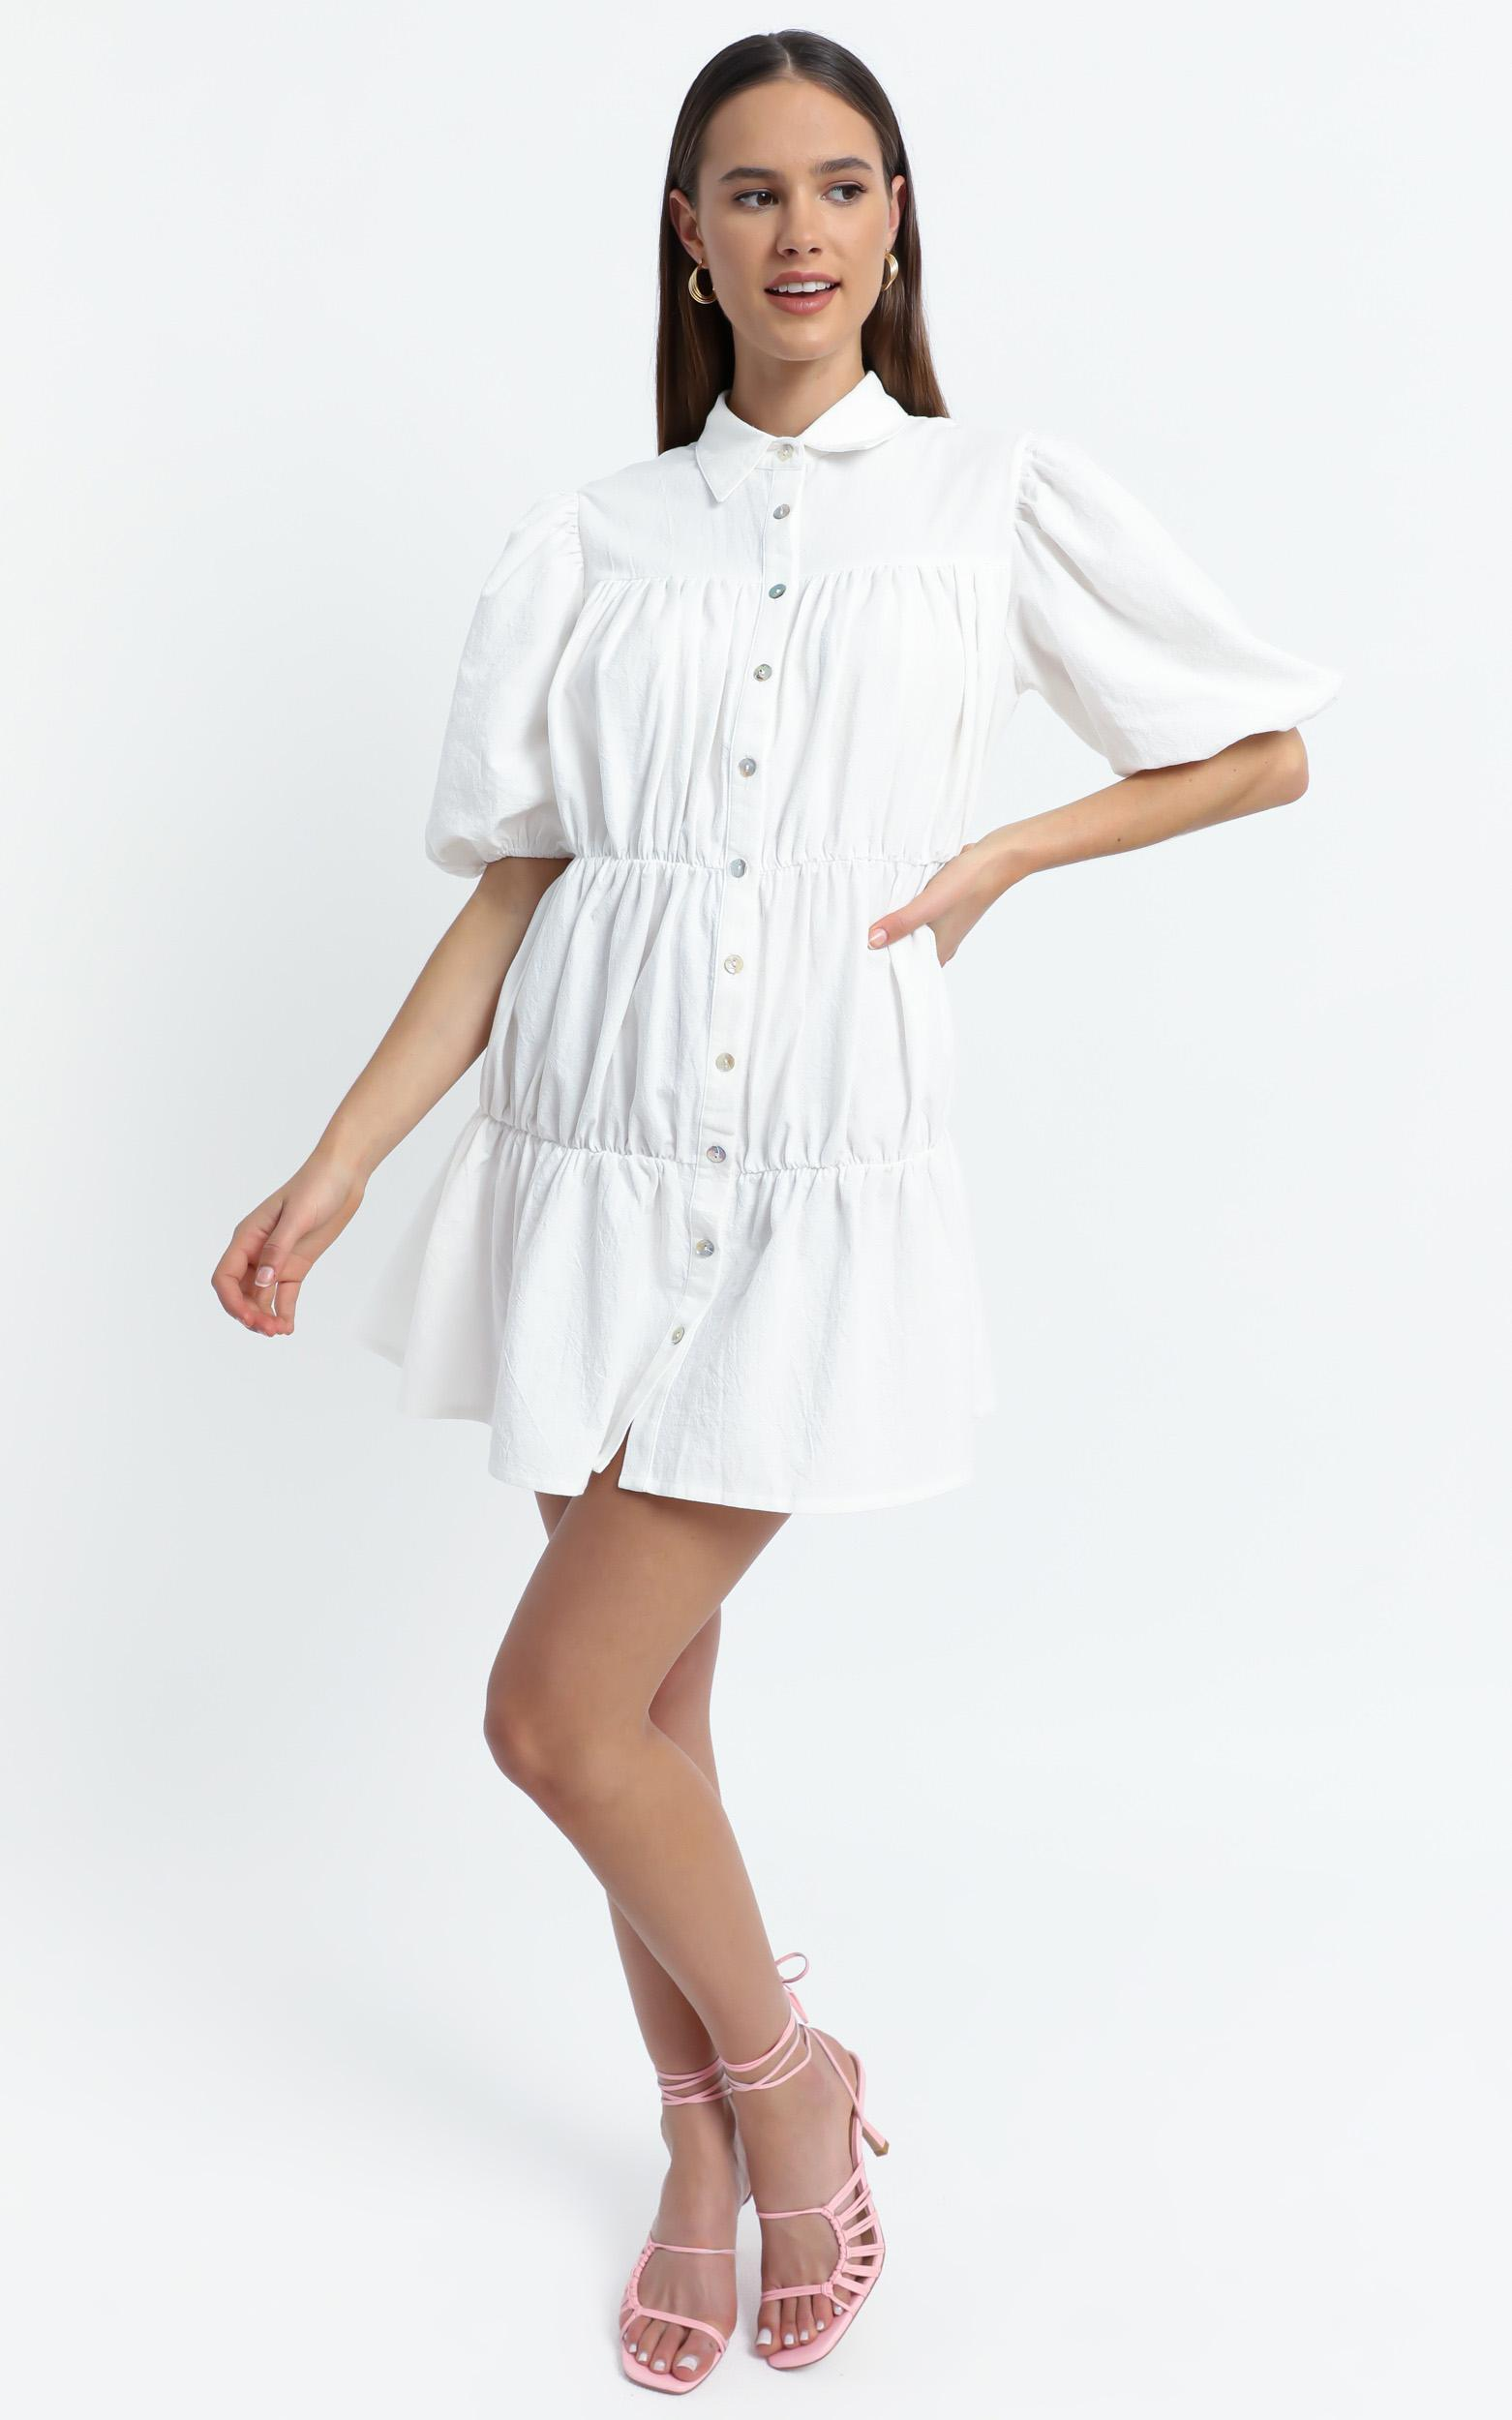 Bijou Dress in White - 6 (XS), WHT1, hi-res image number null